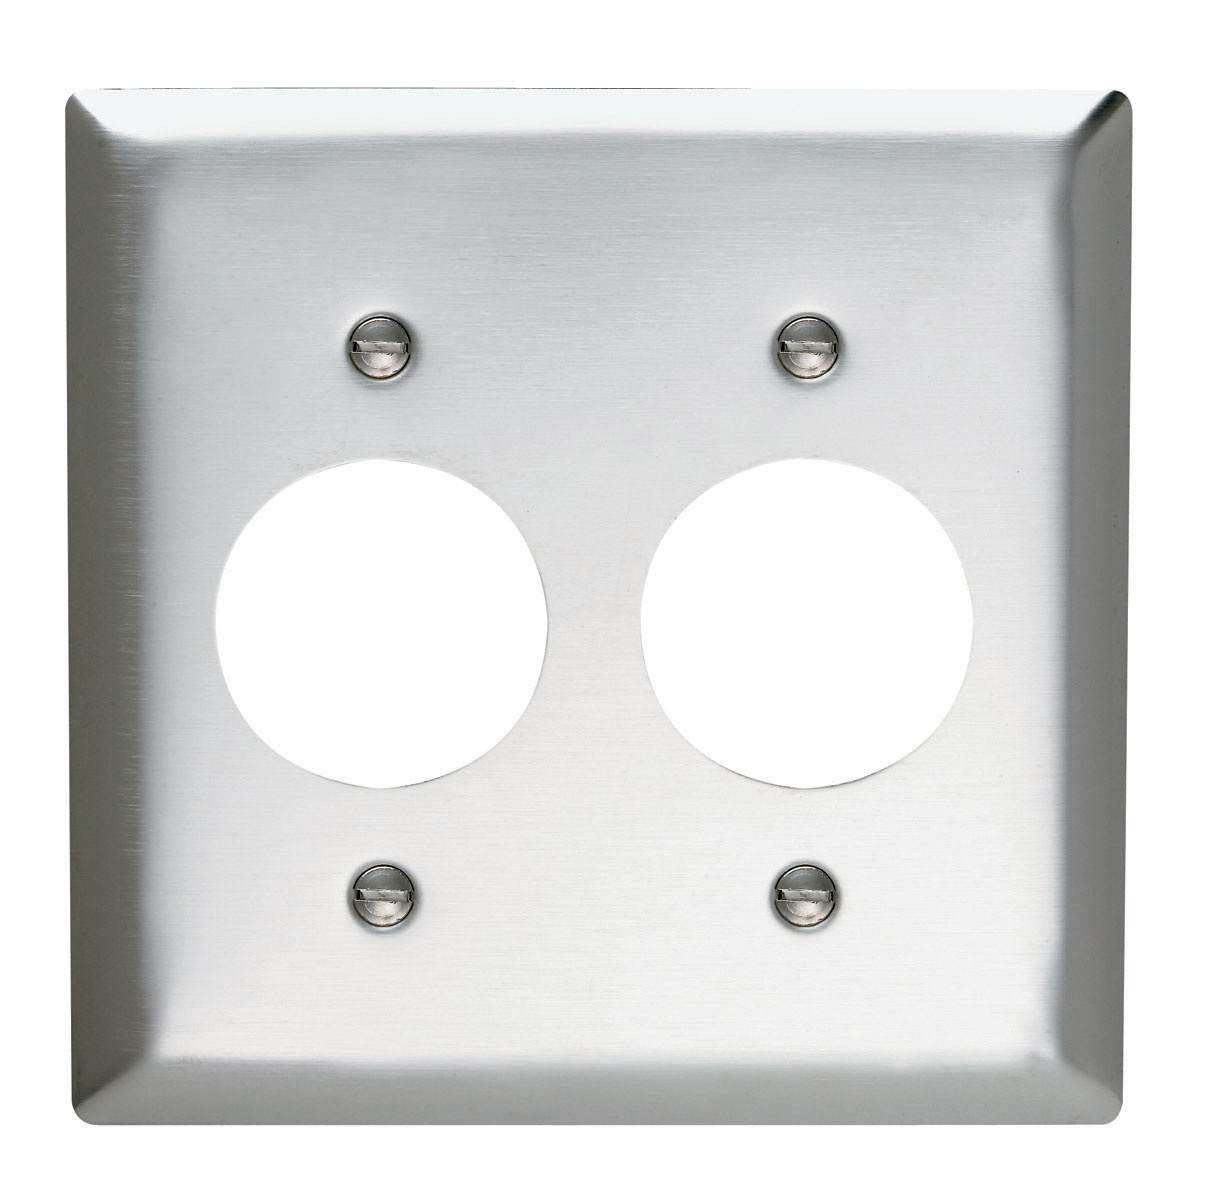 Single Receptacle Openings, Two Gang, 302/304 Stainless Steel